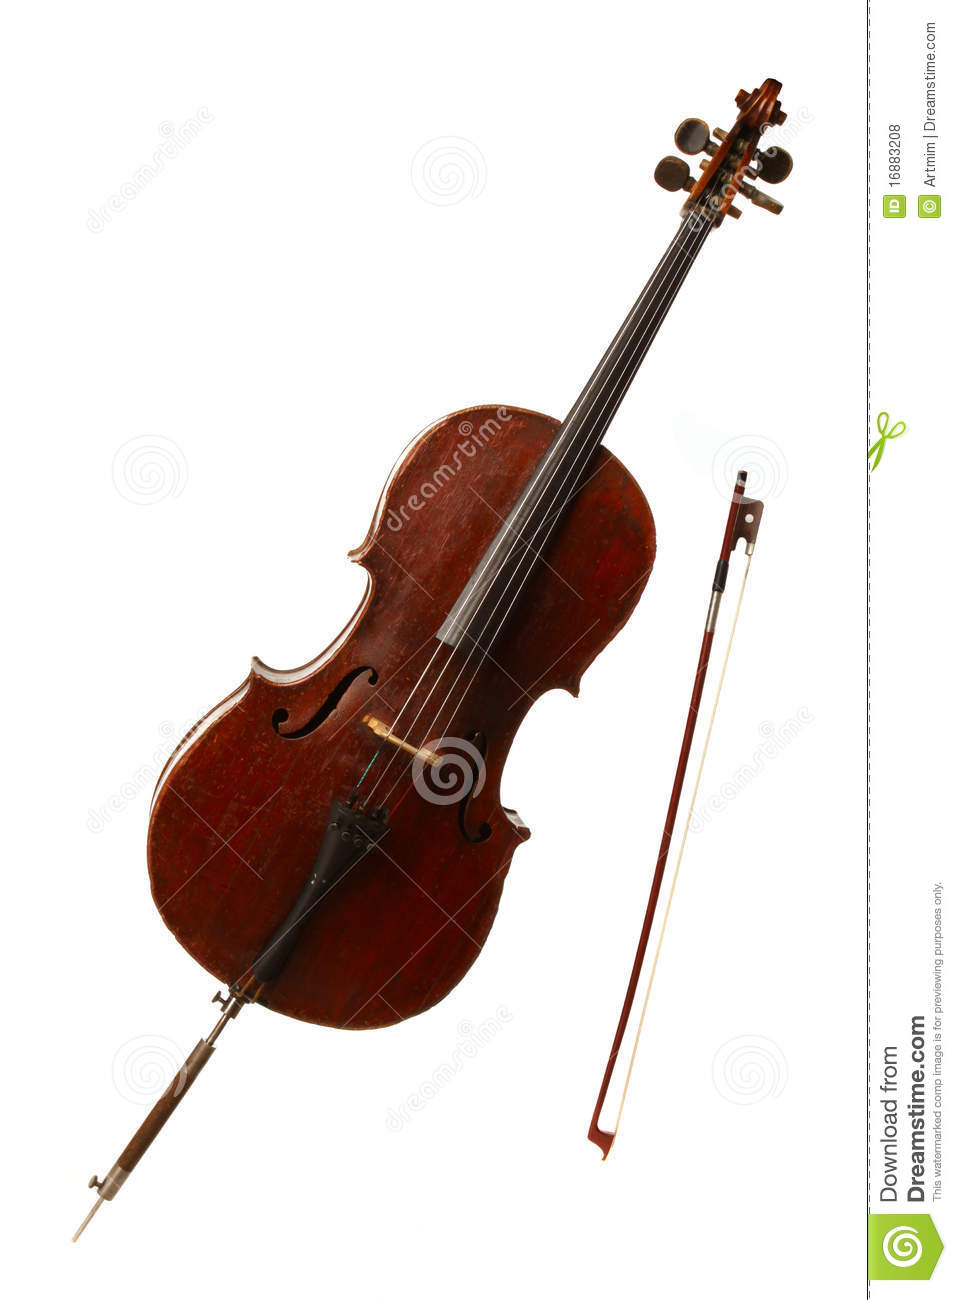 Classical Musical Instrument - Cello Stock Photo - Image ...